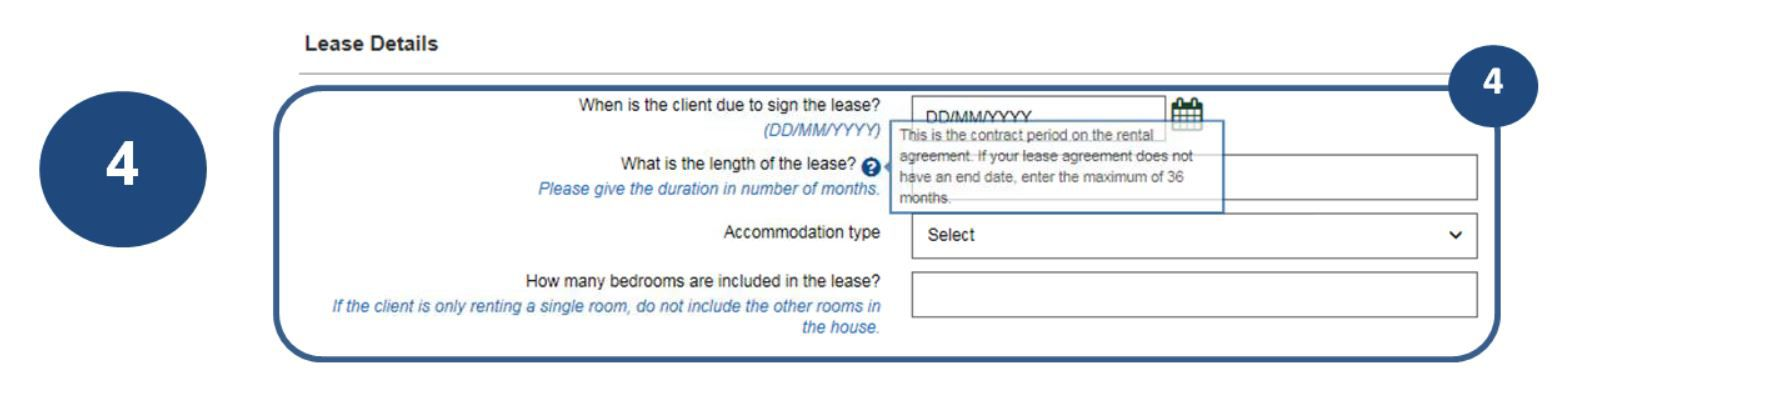 4. Complete the fields for Lease details, ensuring all details are correct, especially due date for signing of lease and length of lease.